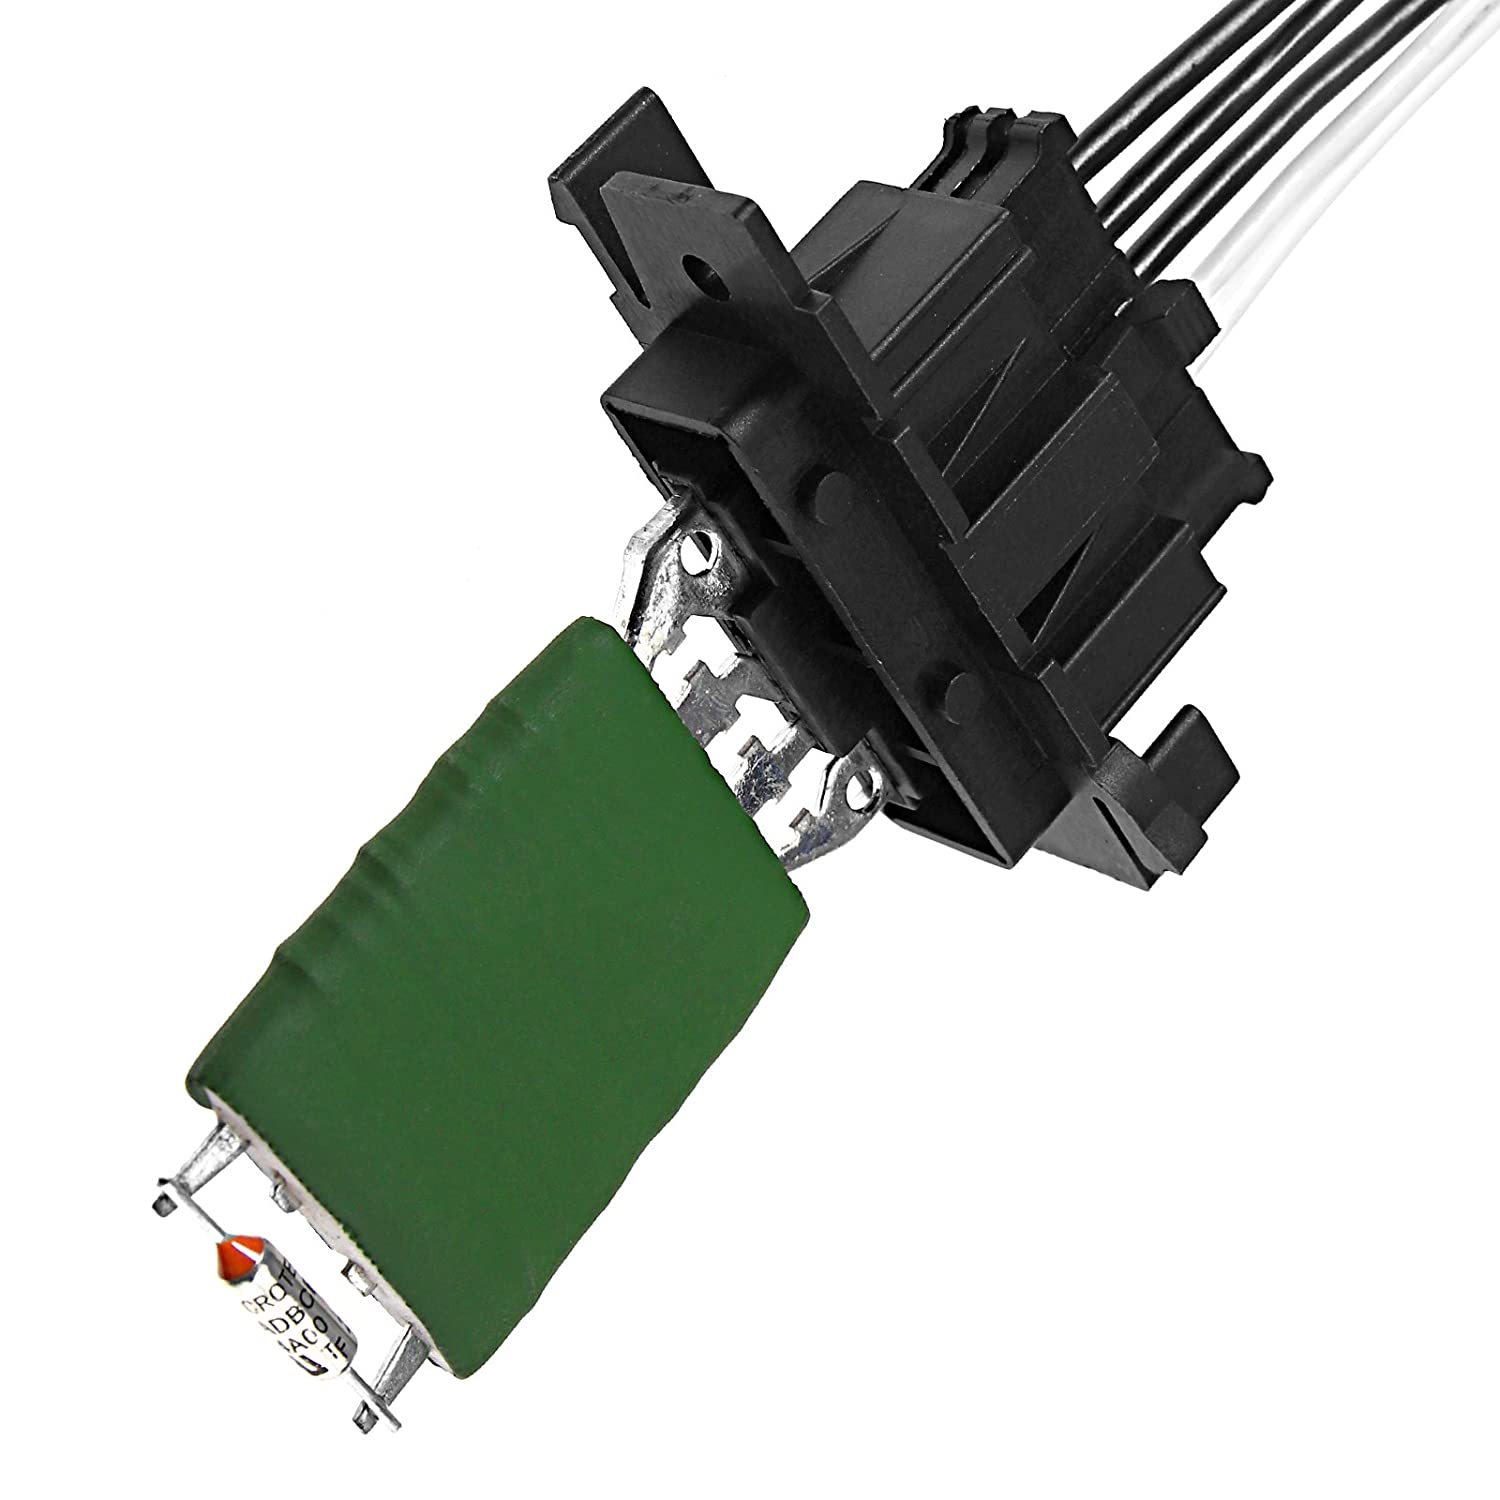 Harness for Car BLAGE Looms Creative-Idea R /¨ /¦ Resilience Heater Motor Blower Module Control Tier M /¨ /¦ /¨ /¤ C 13248240//6845796